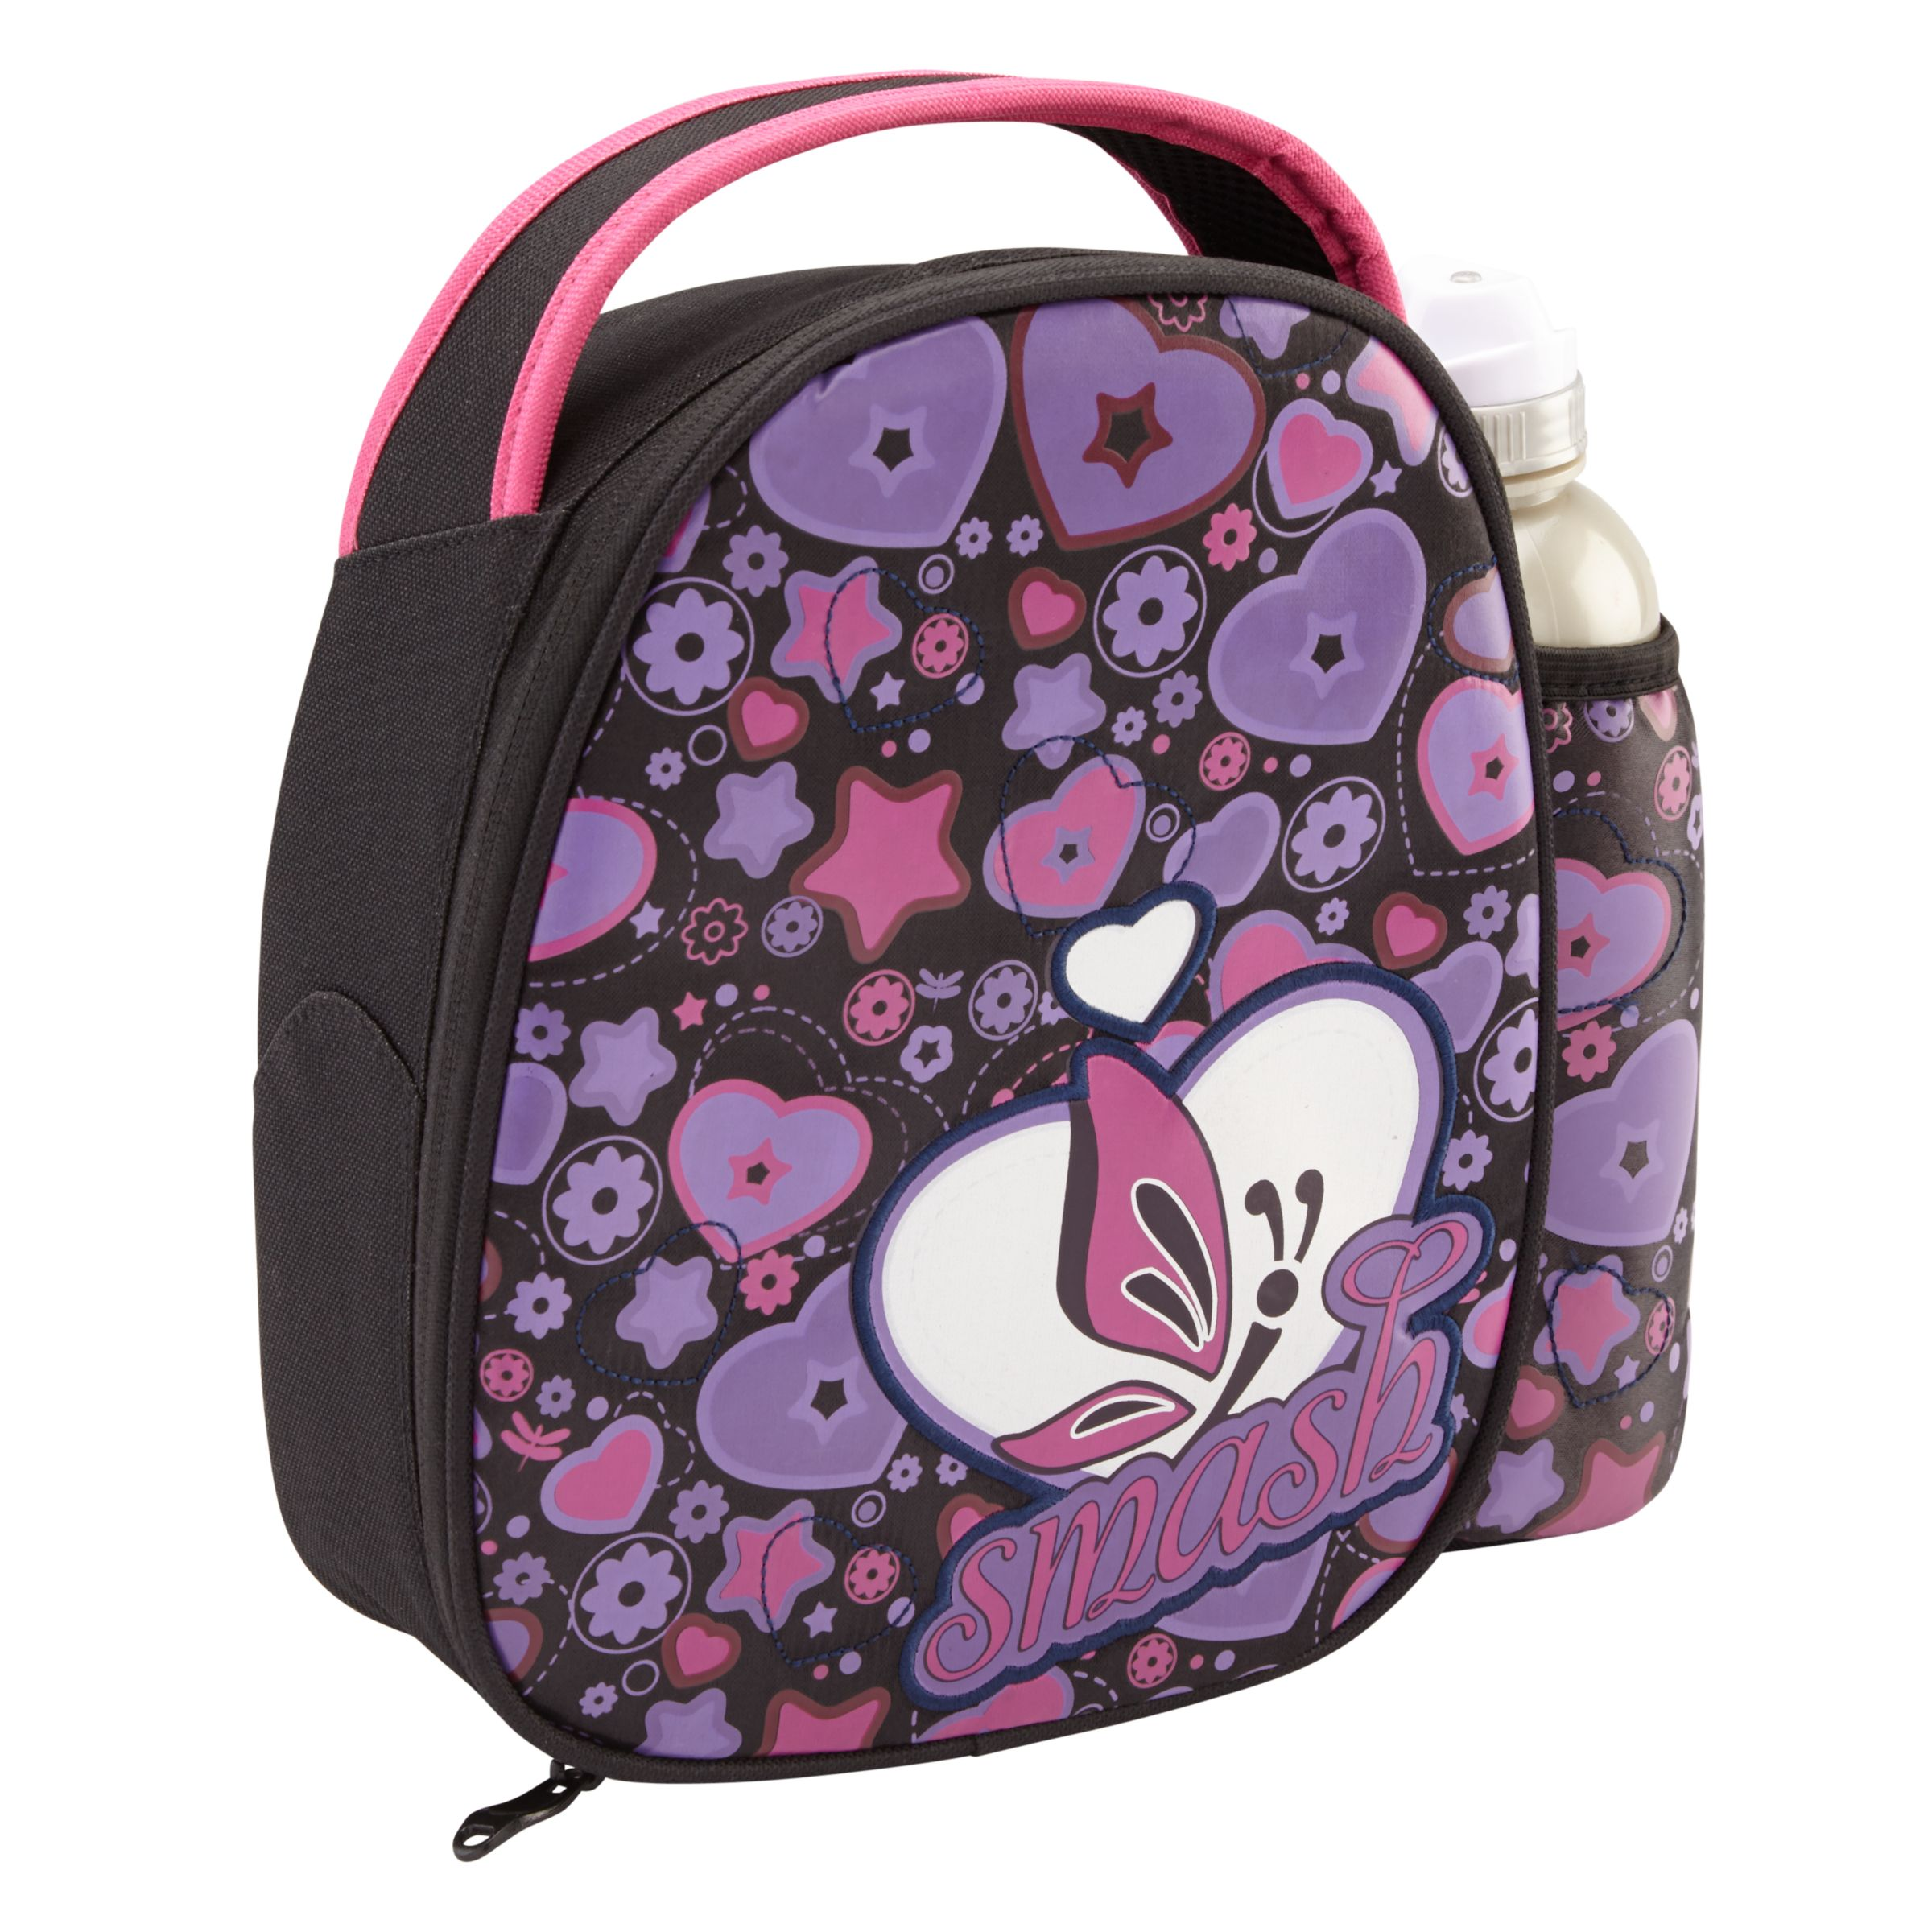 Smash Blush Lunch Bag and Water Bottle